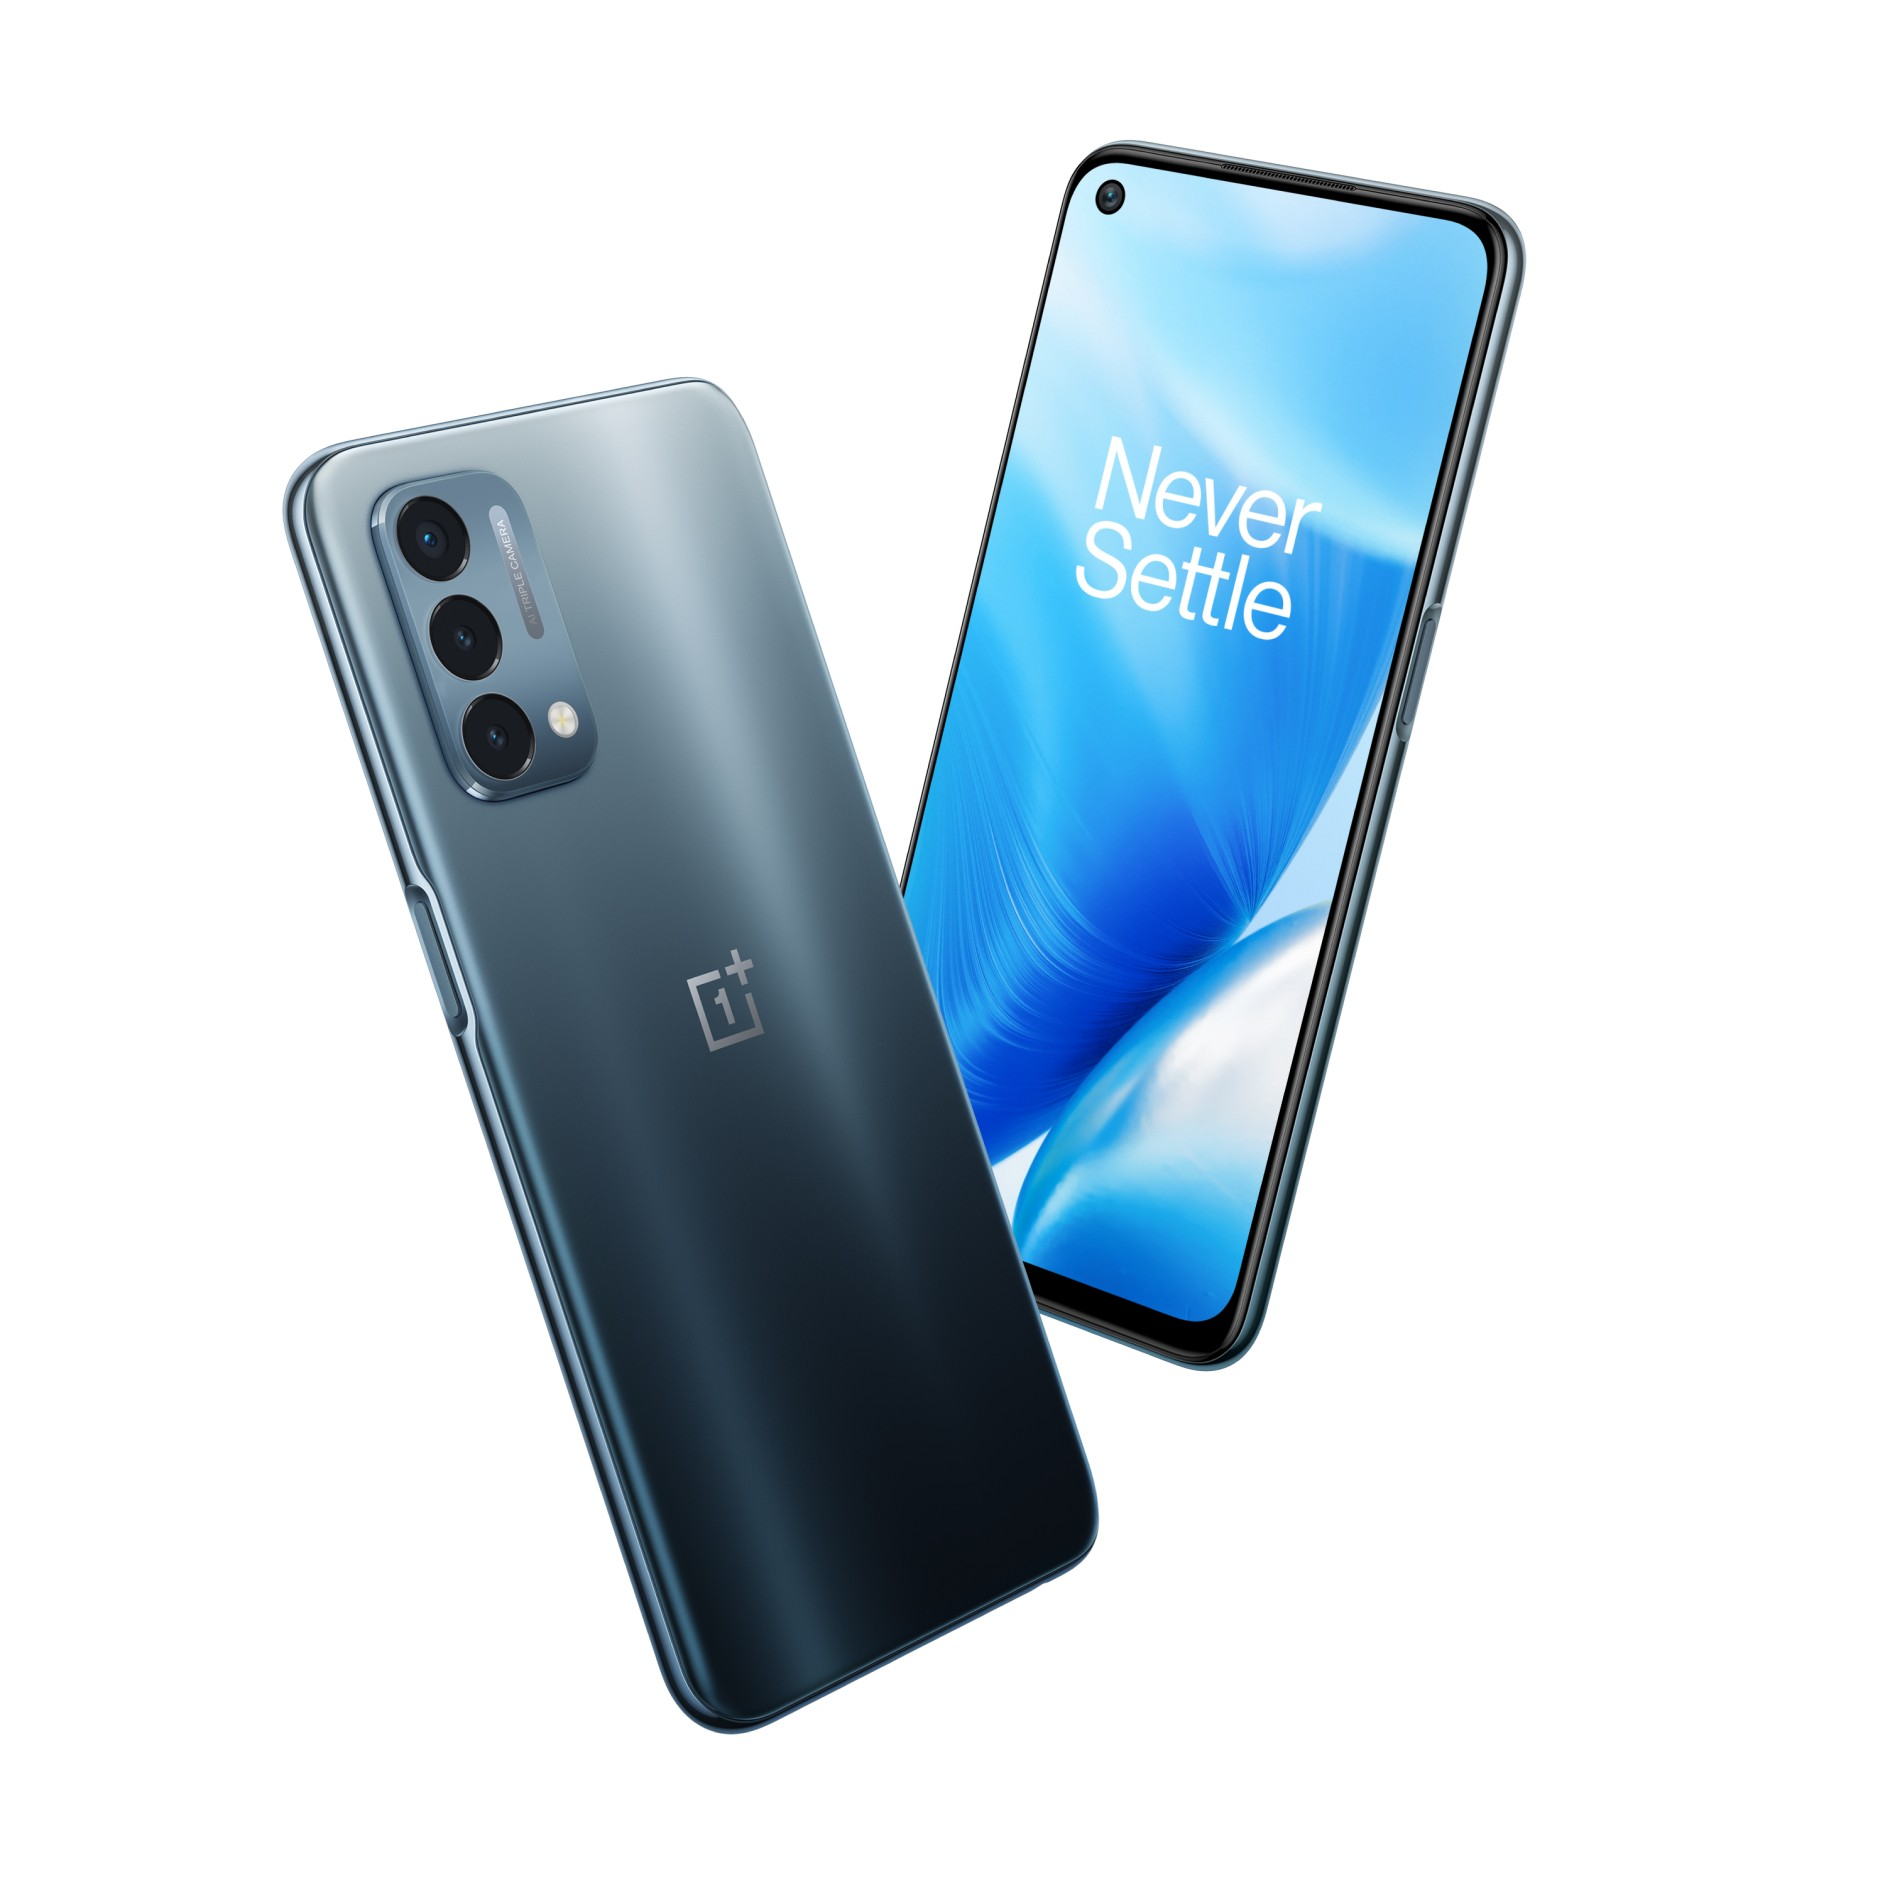 The OnePlus Nord N200 5G is official - coming to the US on June 25th for $240 - TalkAndroid.com